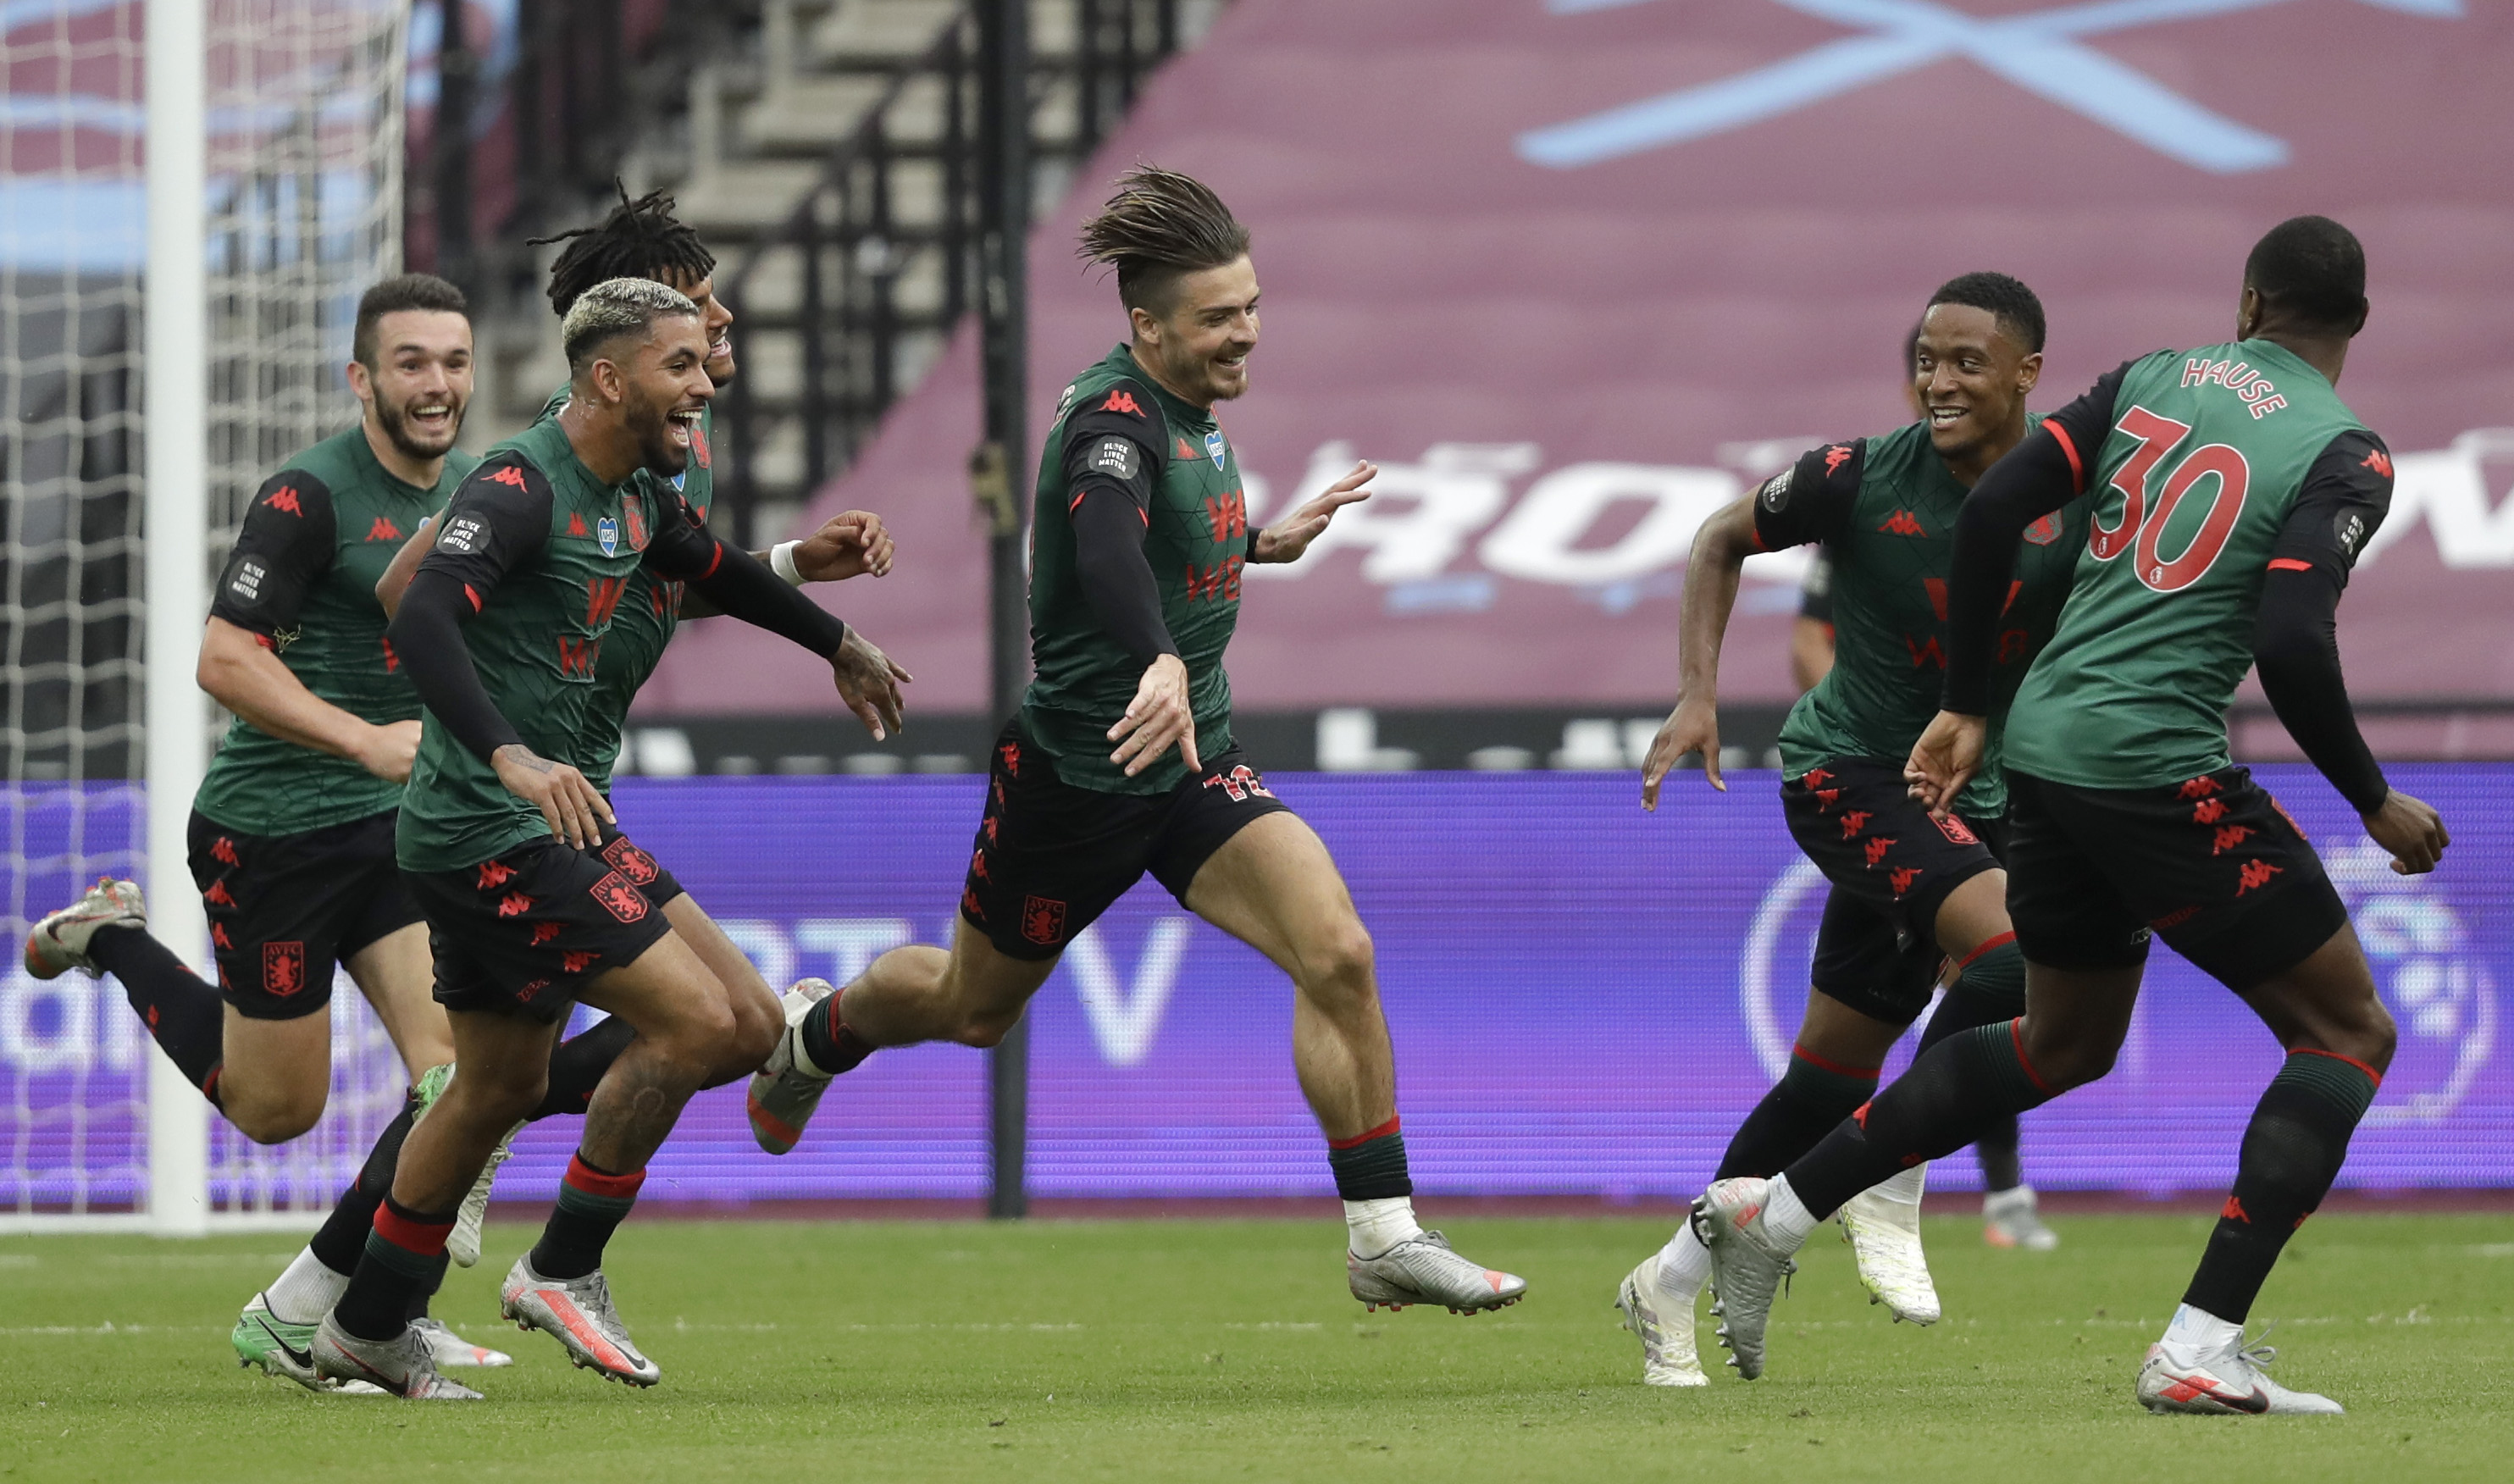 Aston Villa's Jack Grealish, centre,celebrates with teammates after scoring the opening goal of the game during the English Premier League soccer match between West Ham United and Aston Villa at the London Stadium in London, Sunday, July 26, 2020. (AP Photo/Matt Dunham)